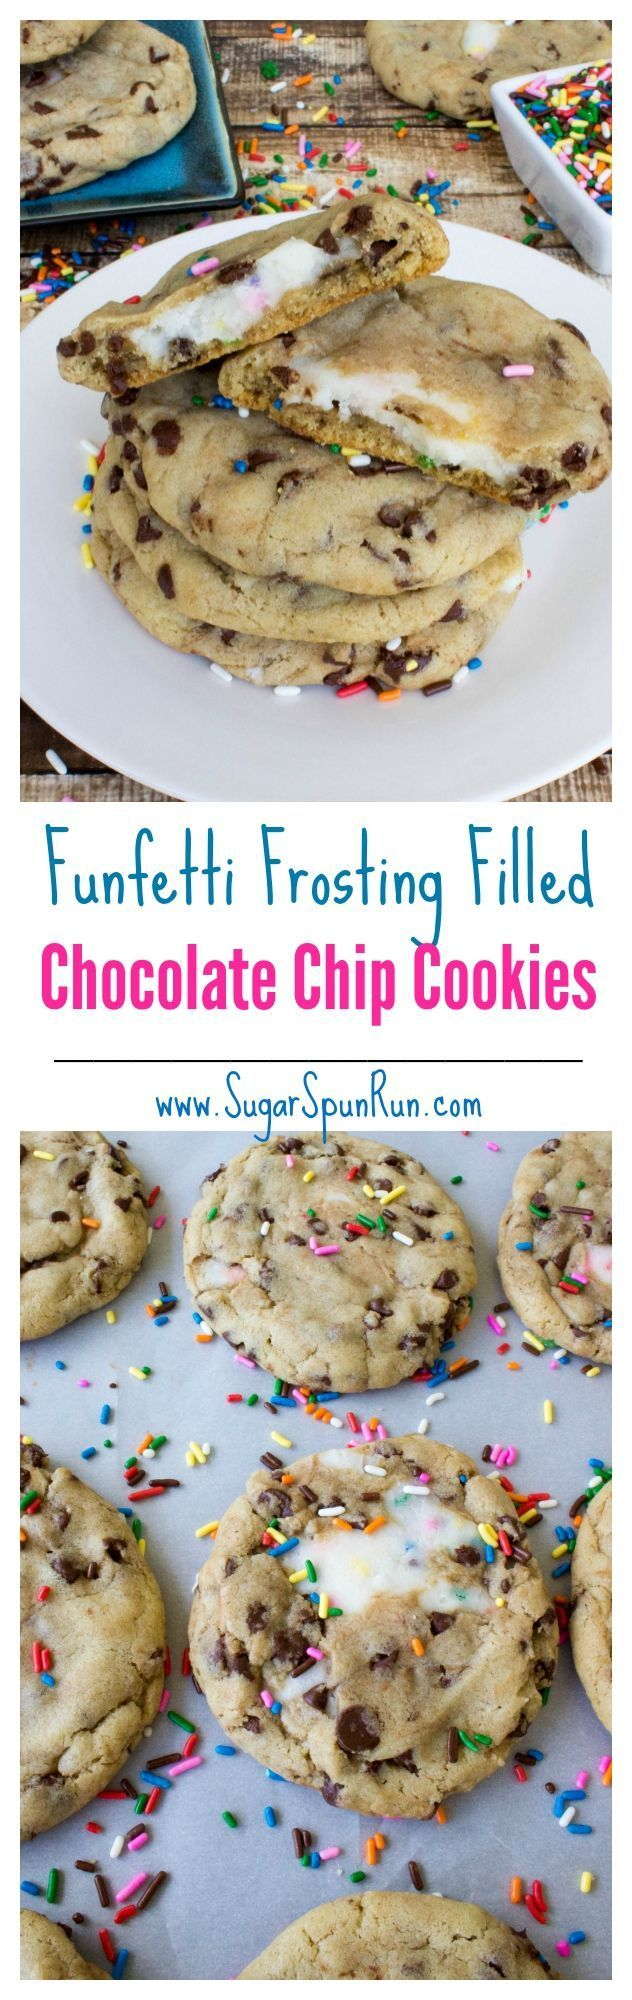 Funfetti frosting filled chocolate chip cookies, might just be the most fun cookies ever! --from SugarSpunRun